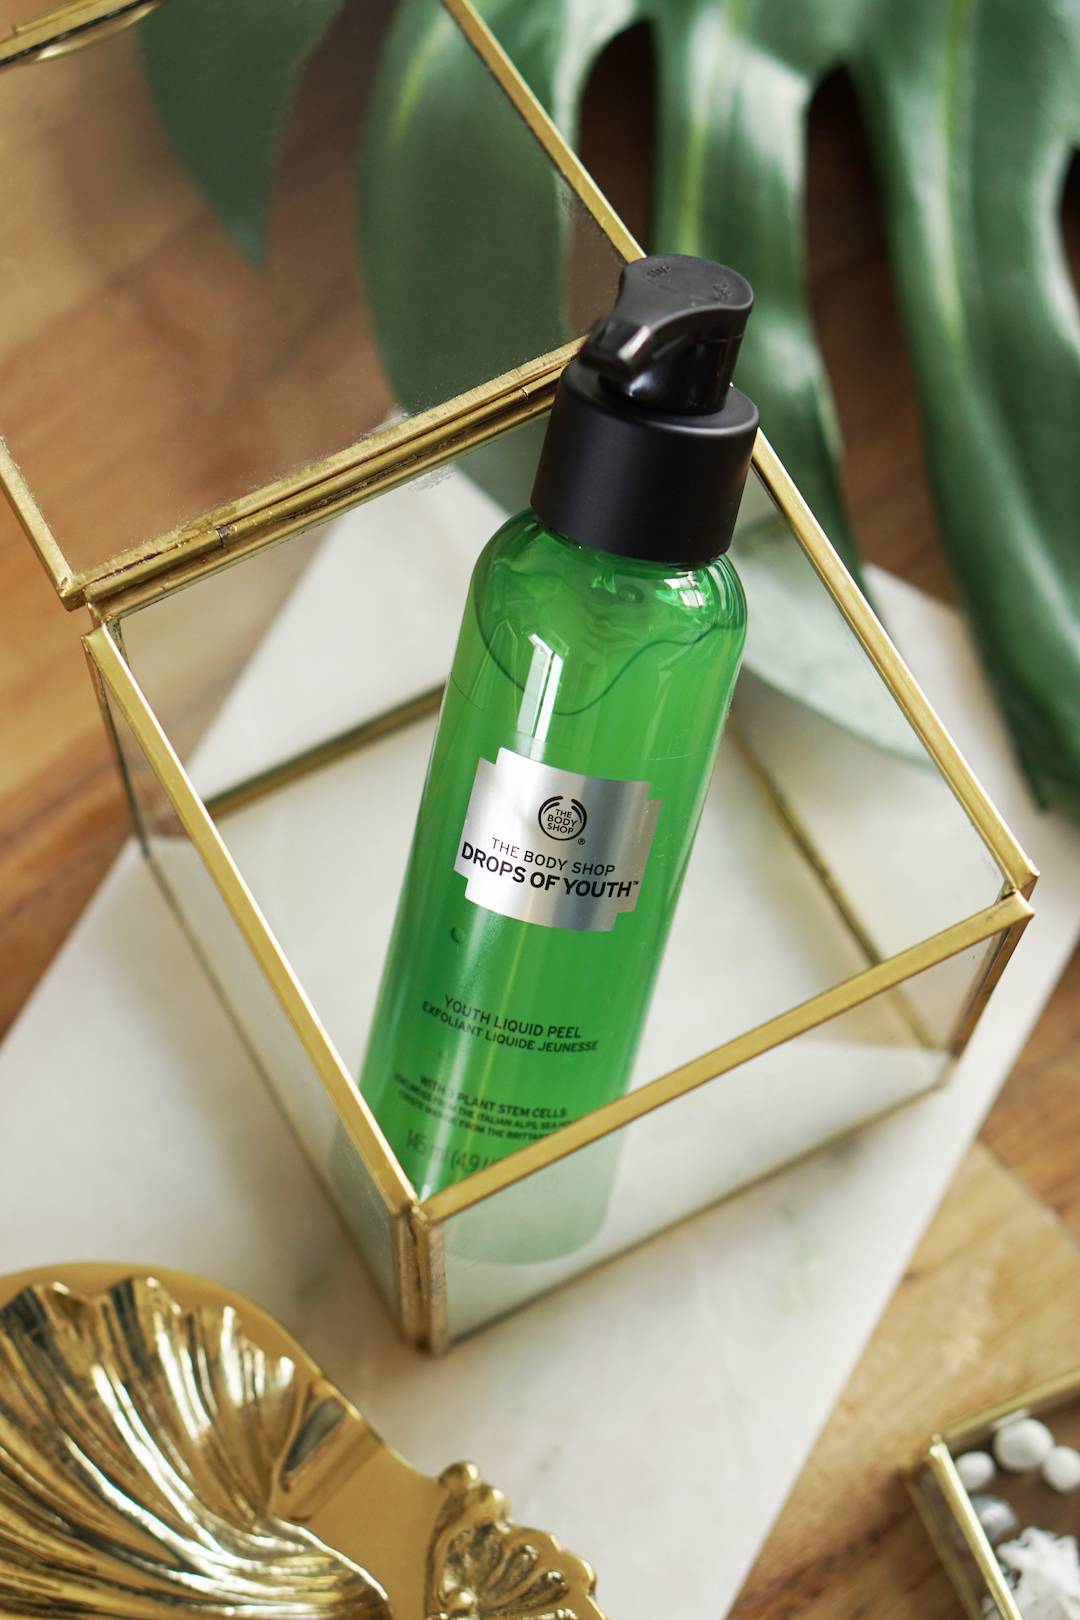 The Body Shop Drops of Youth, Liquid Youth Peel